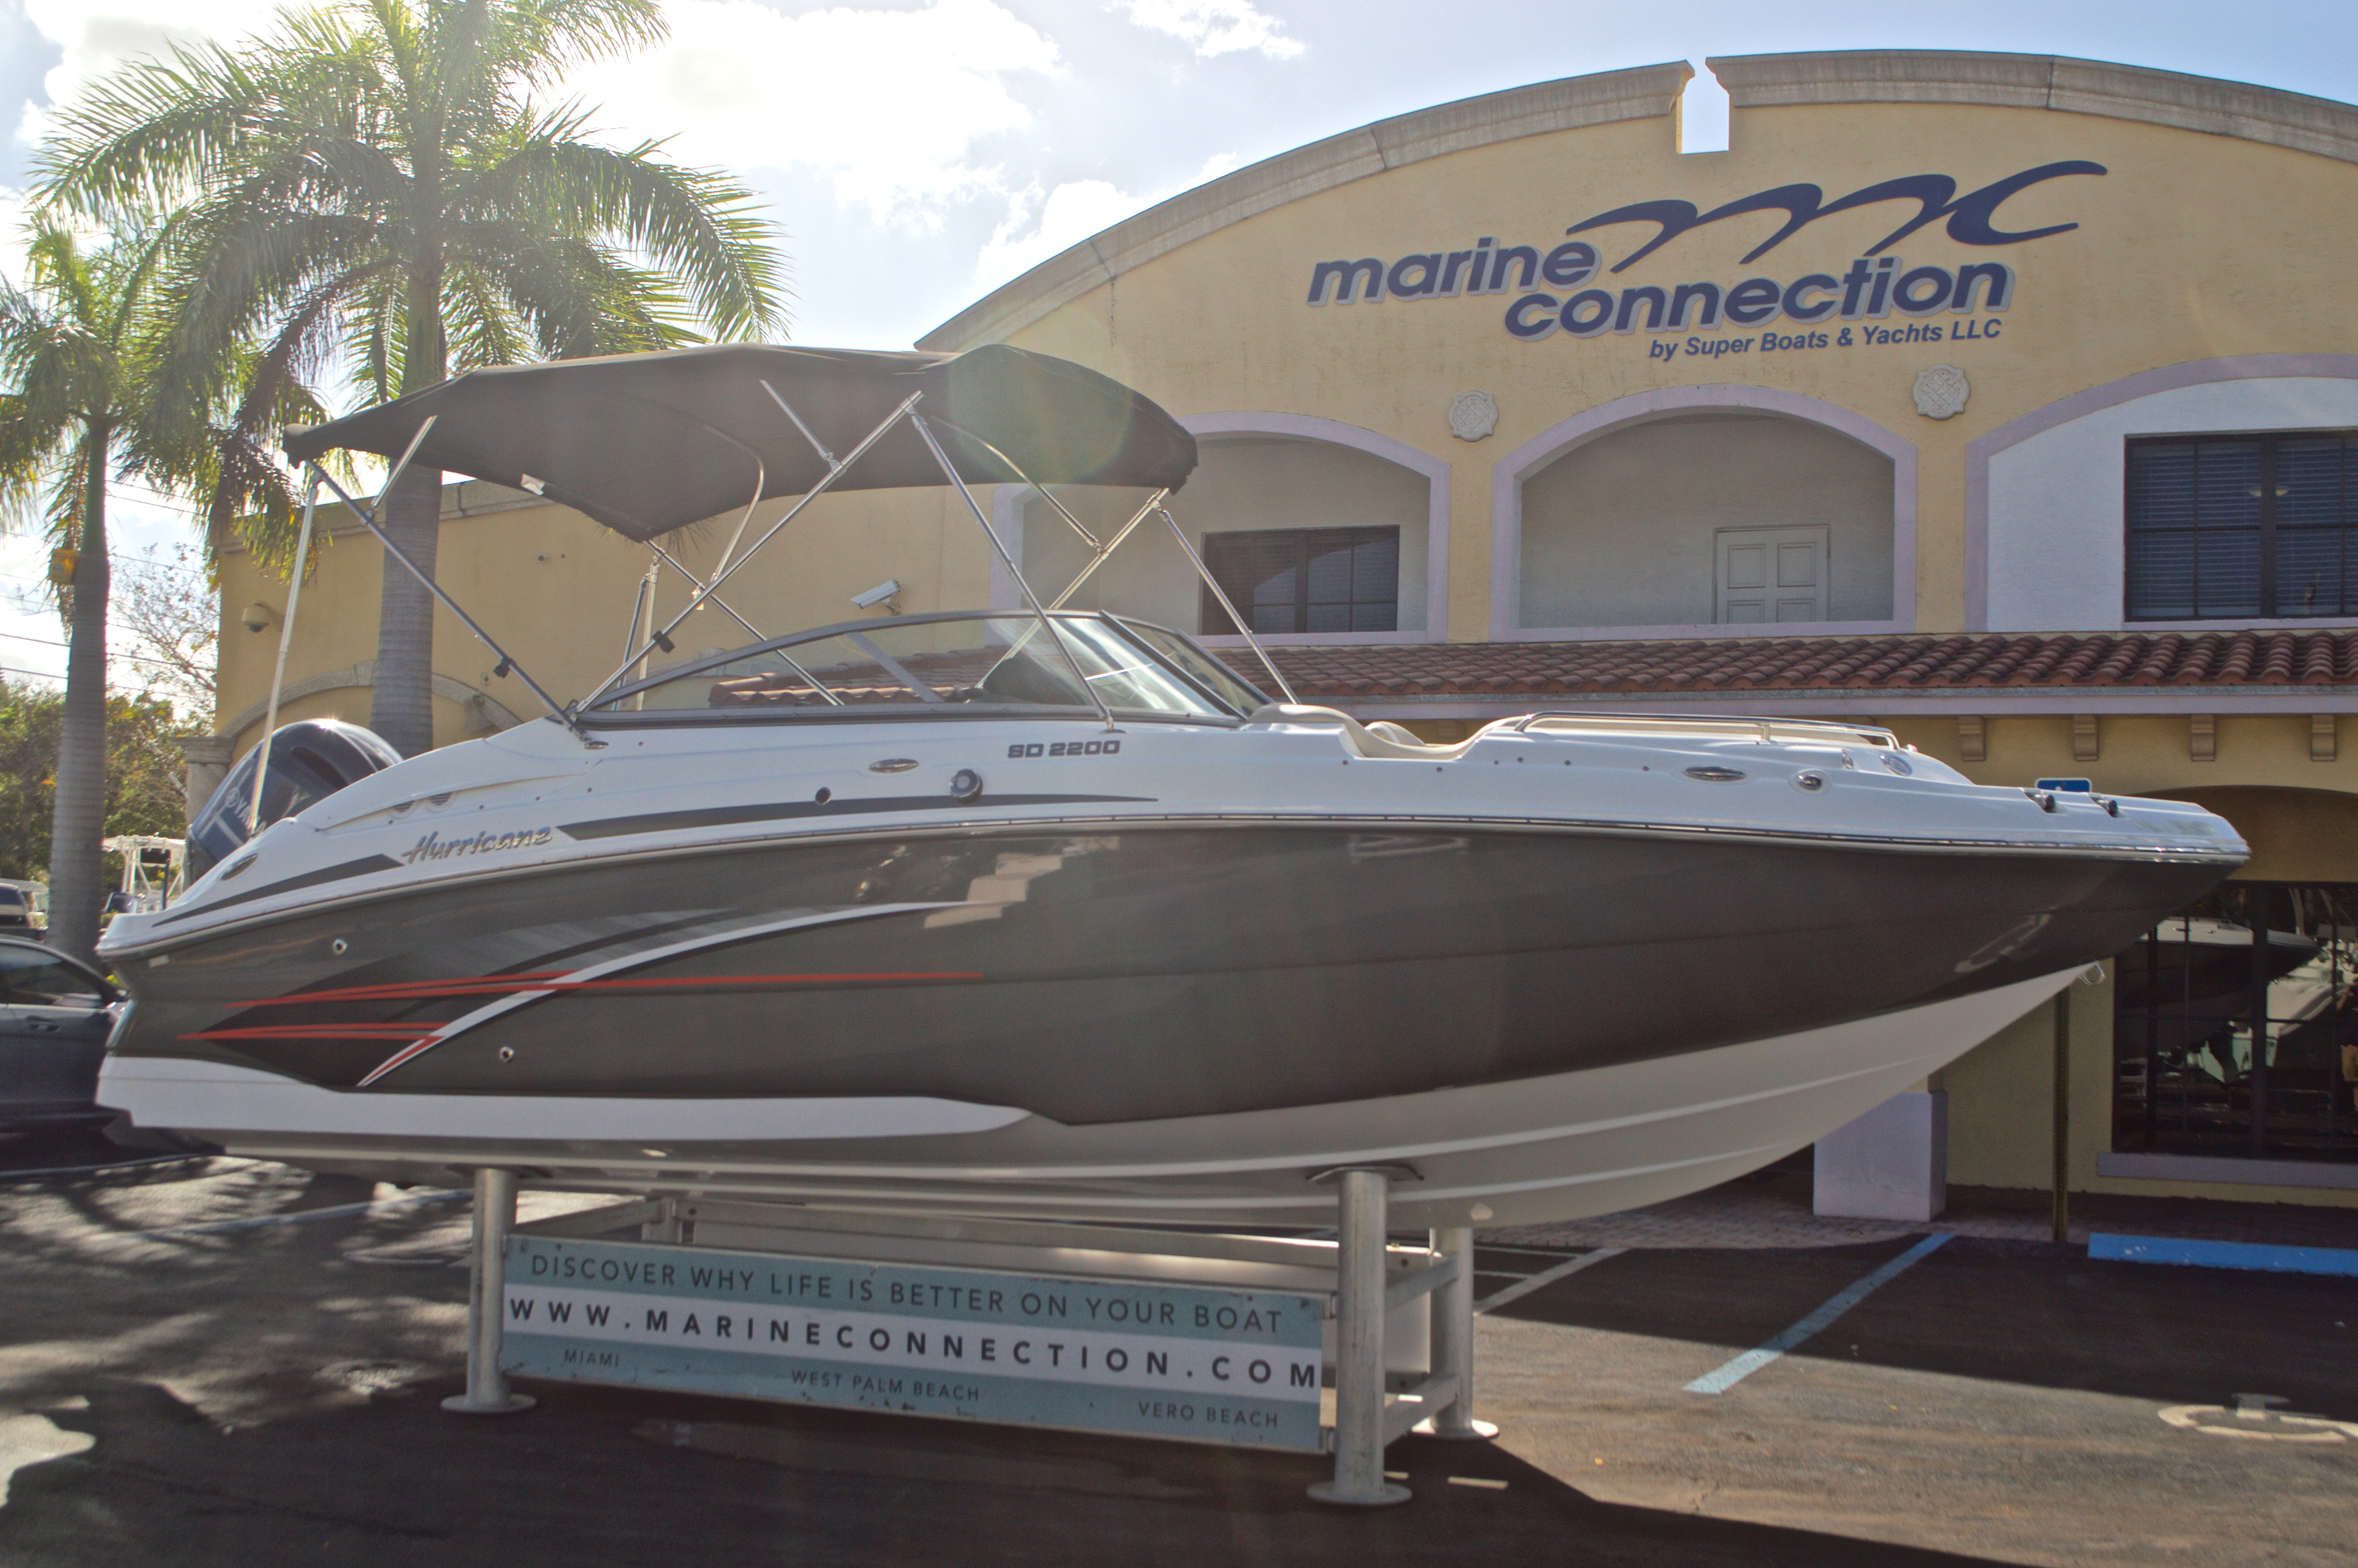 Thumbnail 1 for New 2017 Hurricane SunDeck SD 2200 OB boat for sale in West Palm Beach, FL